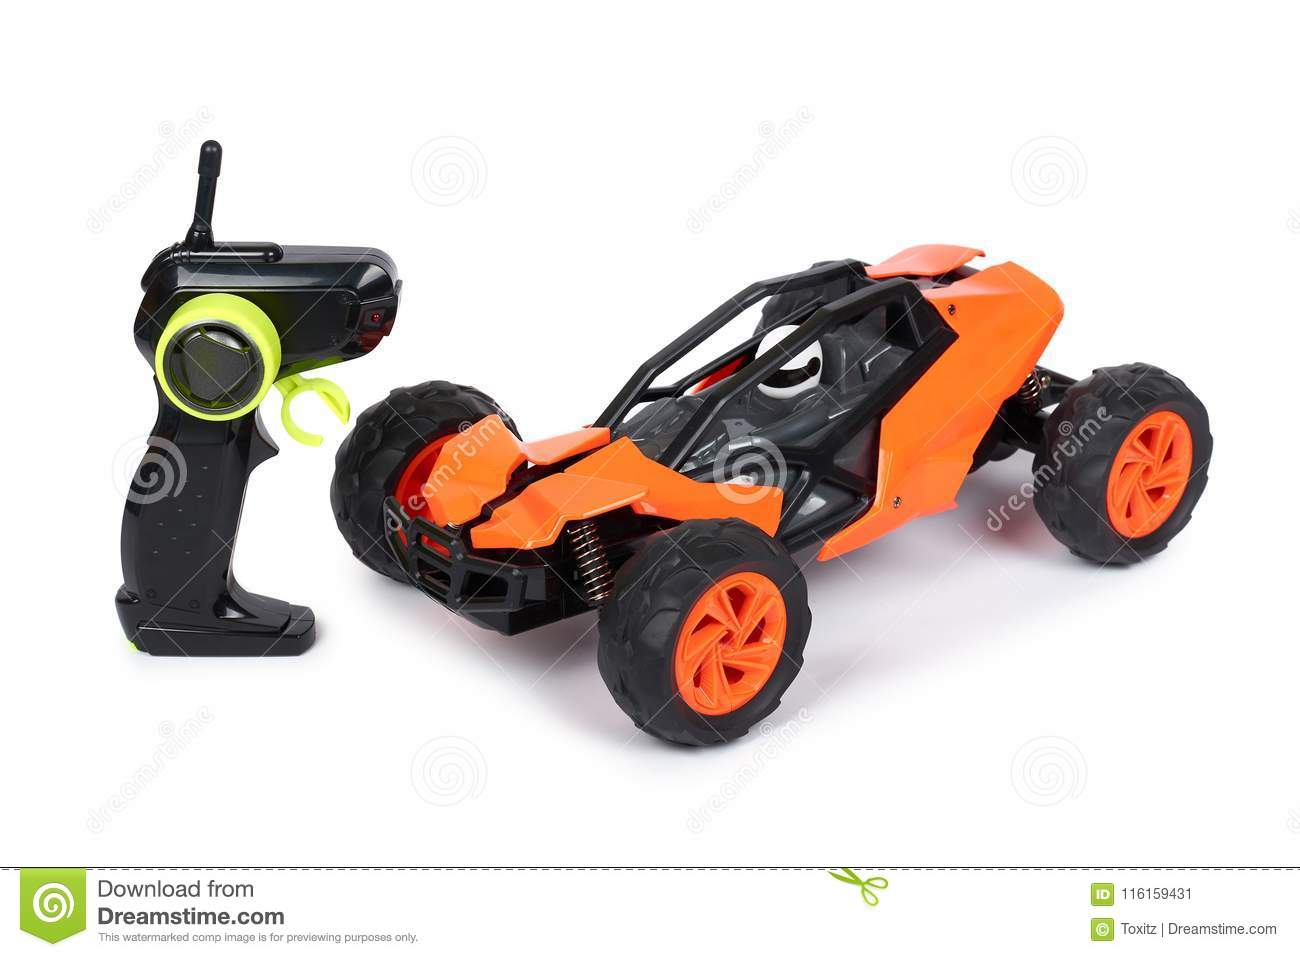 RC model rally, off road buggy with remote control. Isolated on white background, joy and fun sport